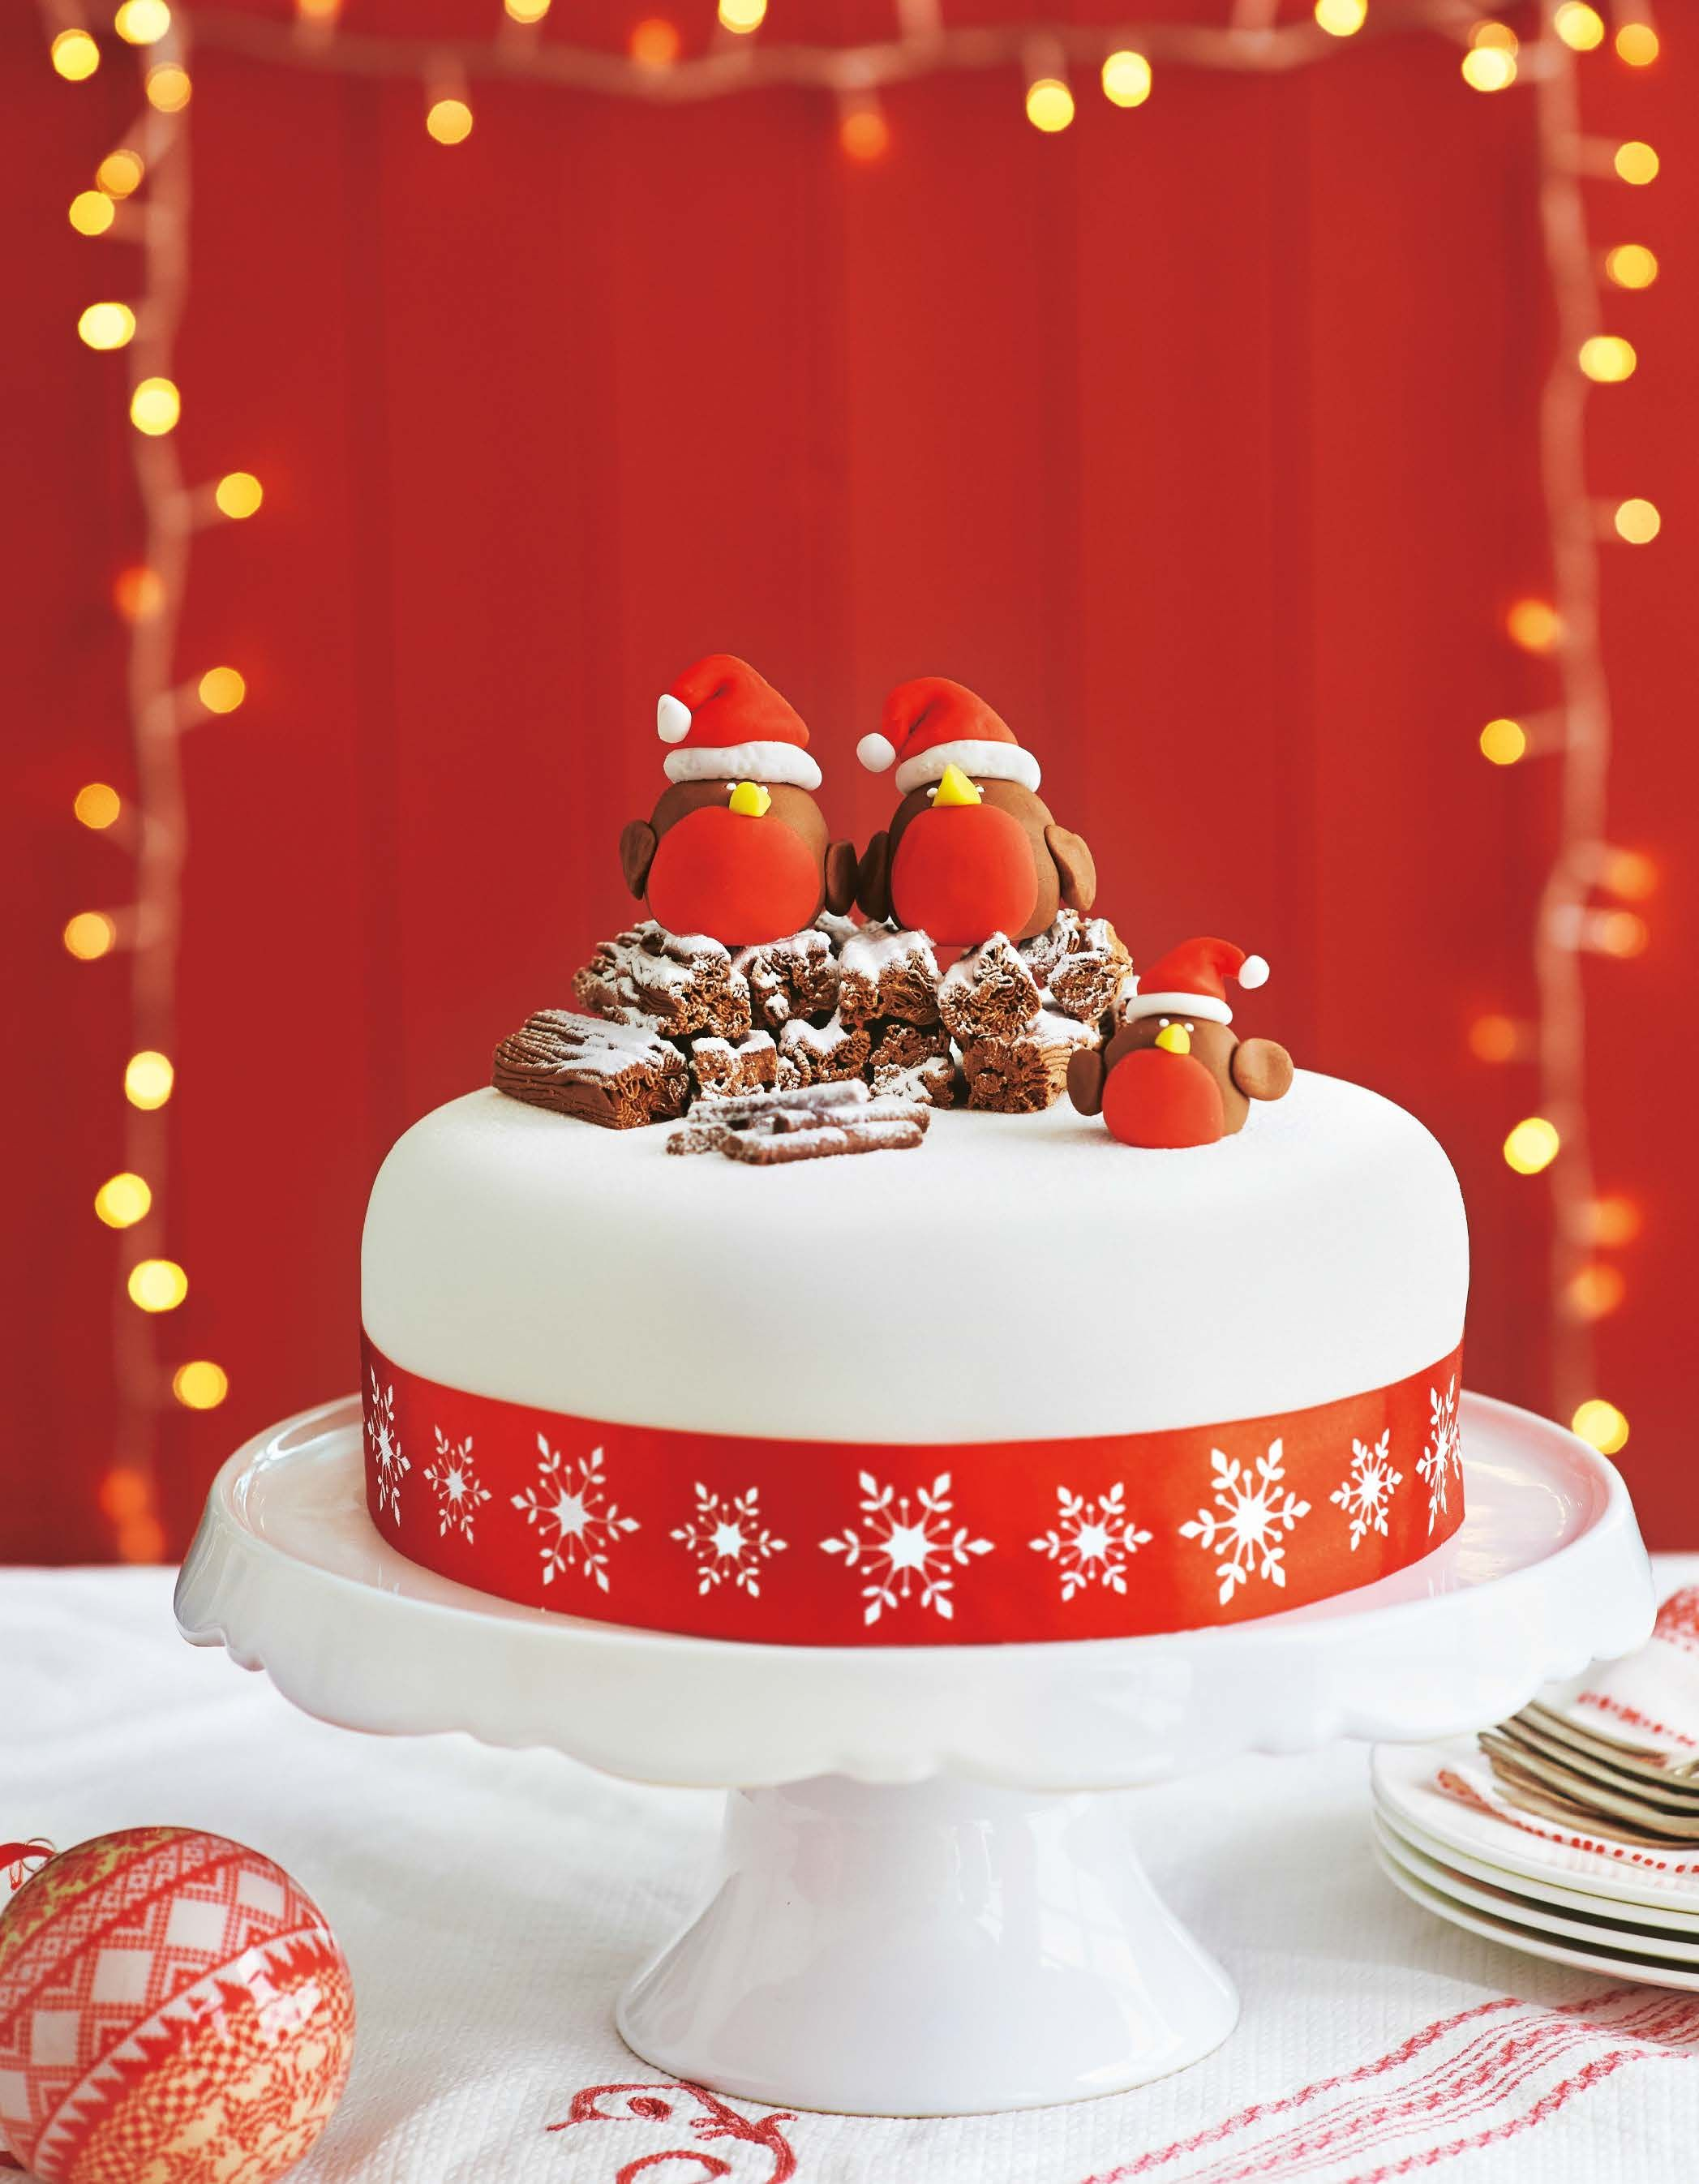 Asda Photo Cake Decorations : Asda Magazine - December 2013 Robins, Cake and Xmas